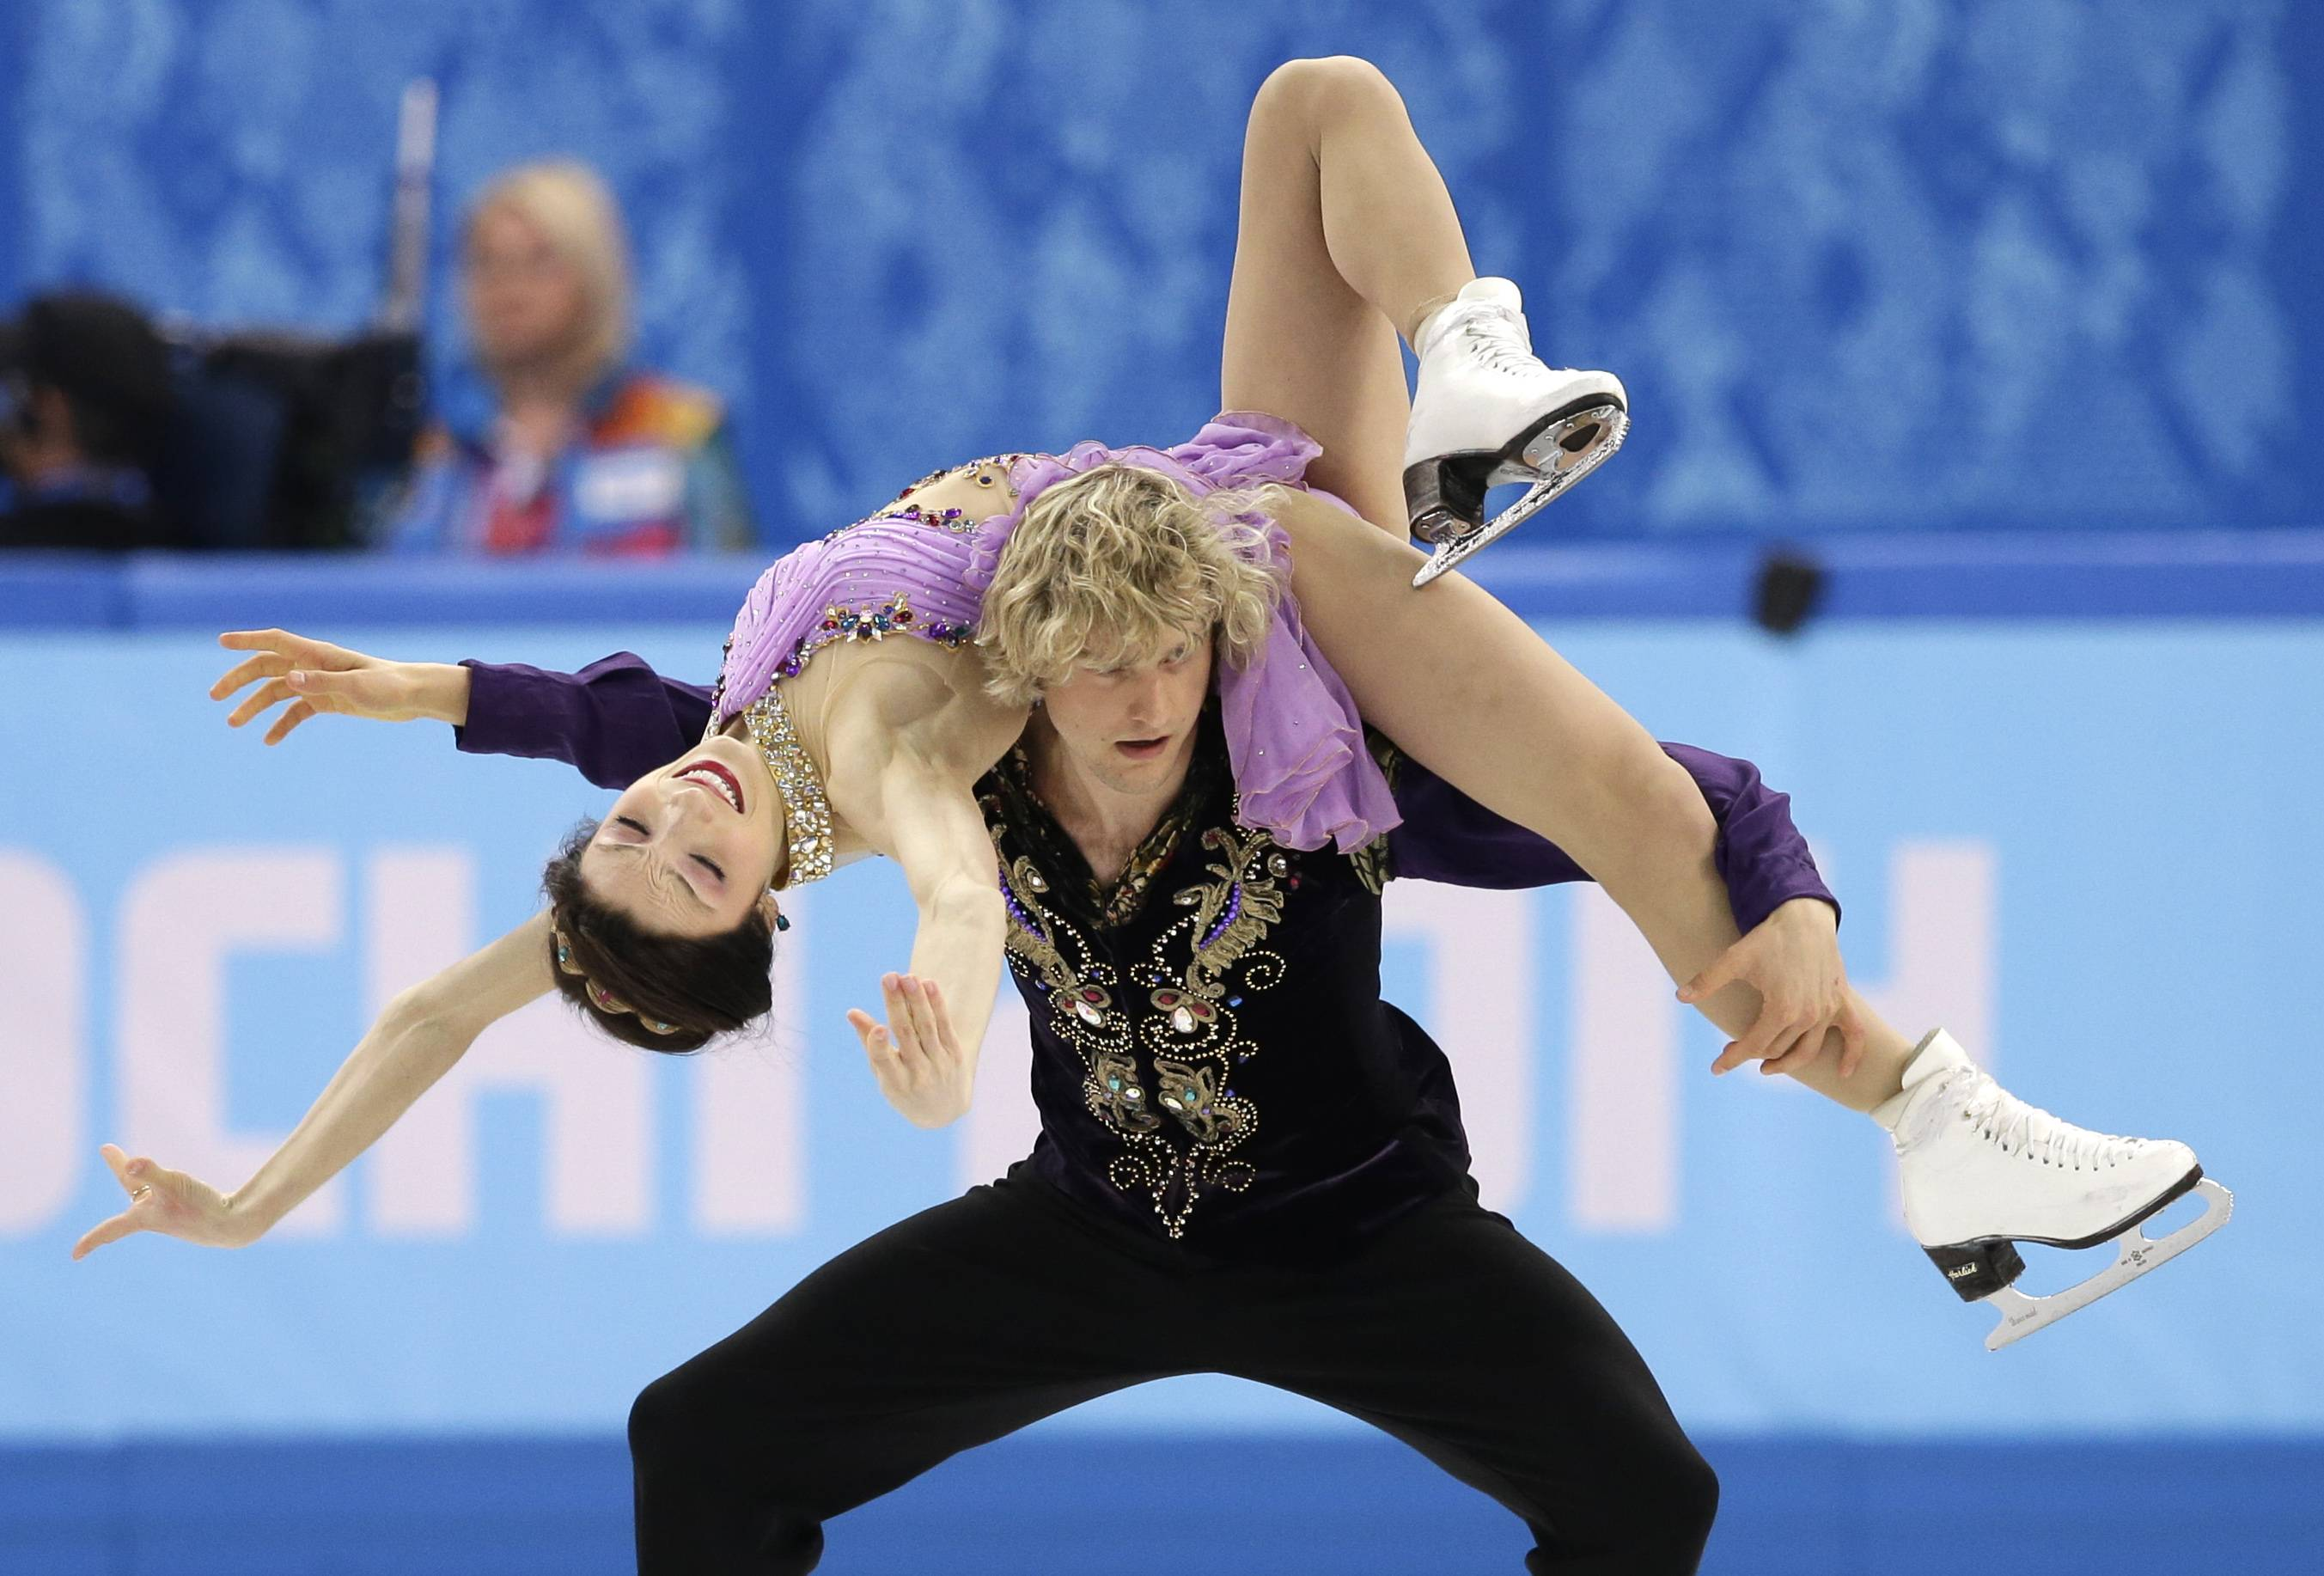 Meryl Davis and Charlie White of the United States compete in the ice dance free dance figure skating finals at the Iceberg Skating Palace during the 2014 Winter Olympics, Monday, Feb. 17, 2014, in Sochi, Russia.